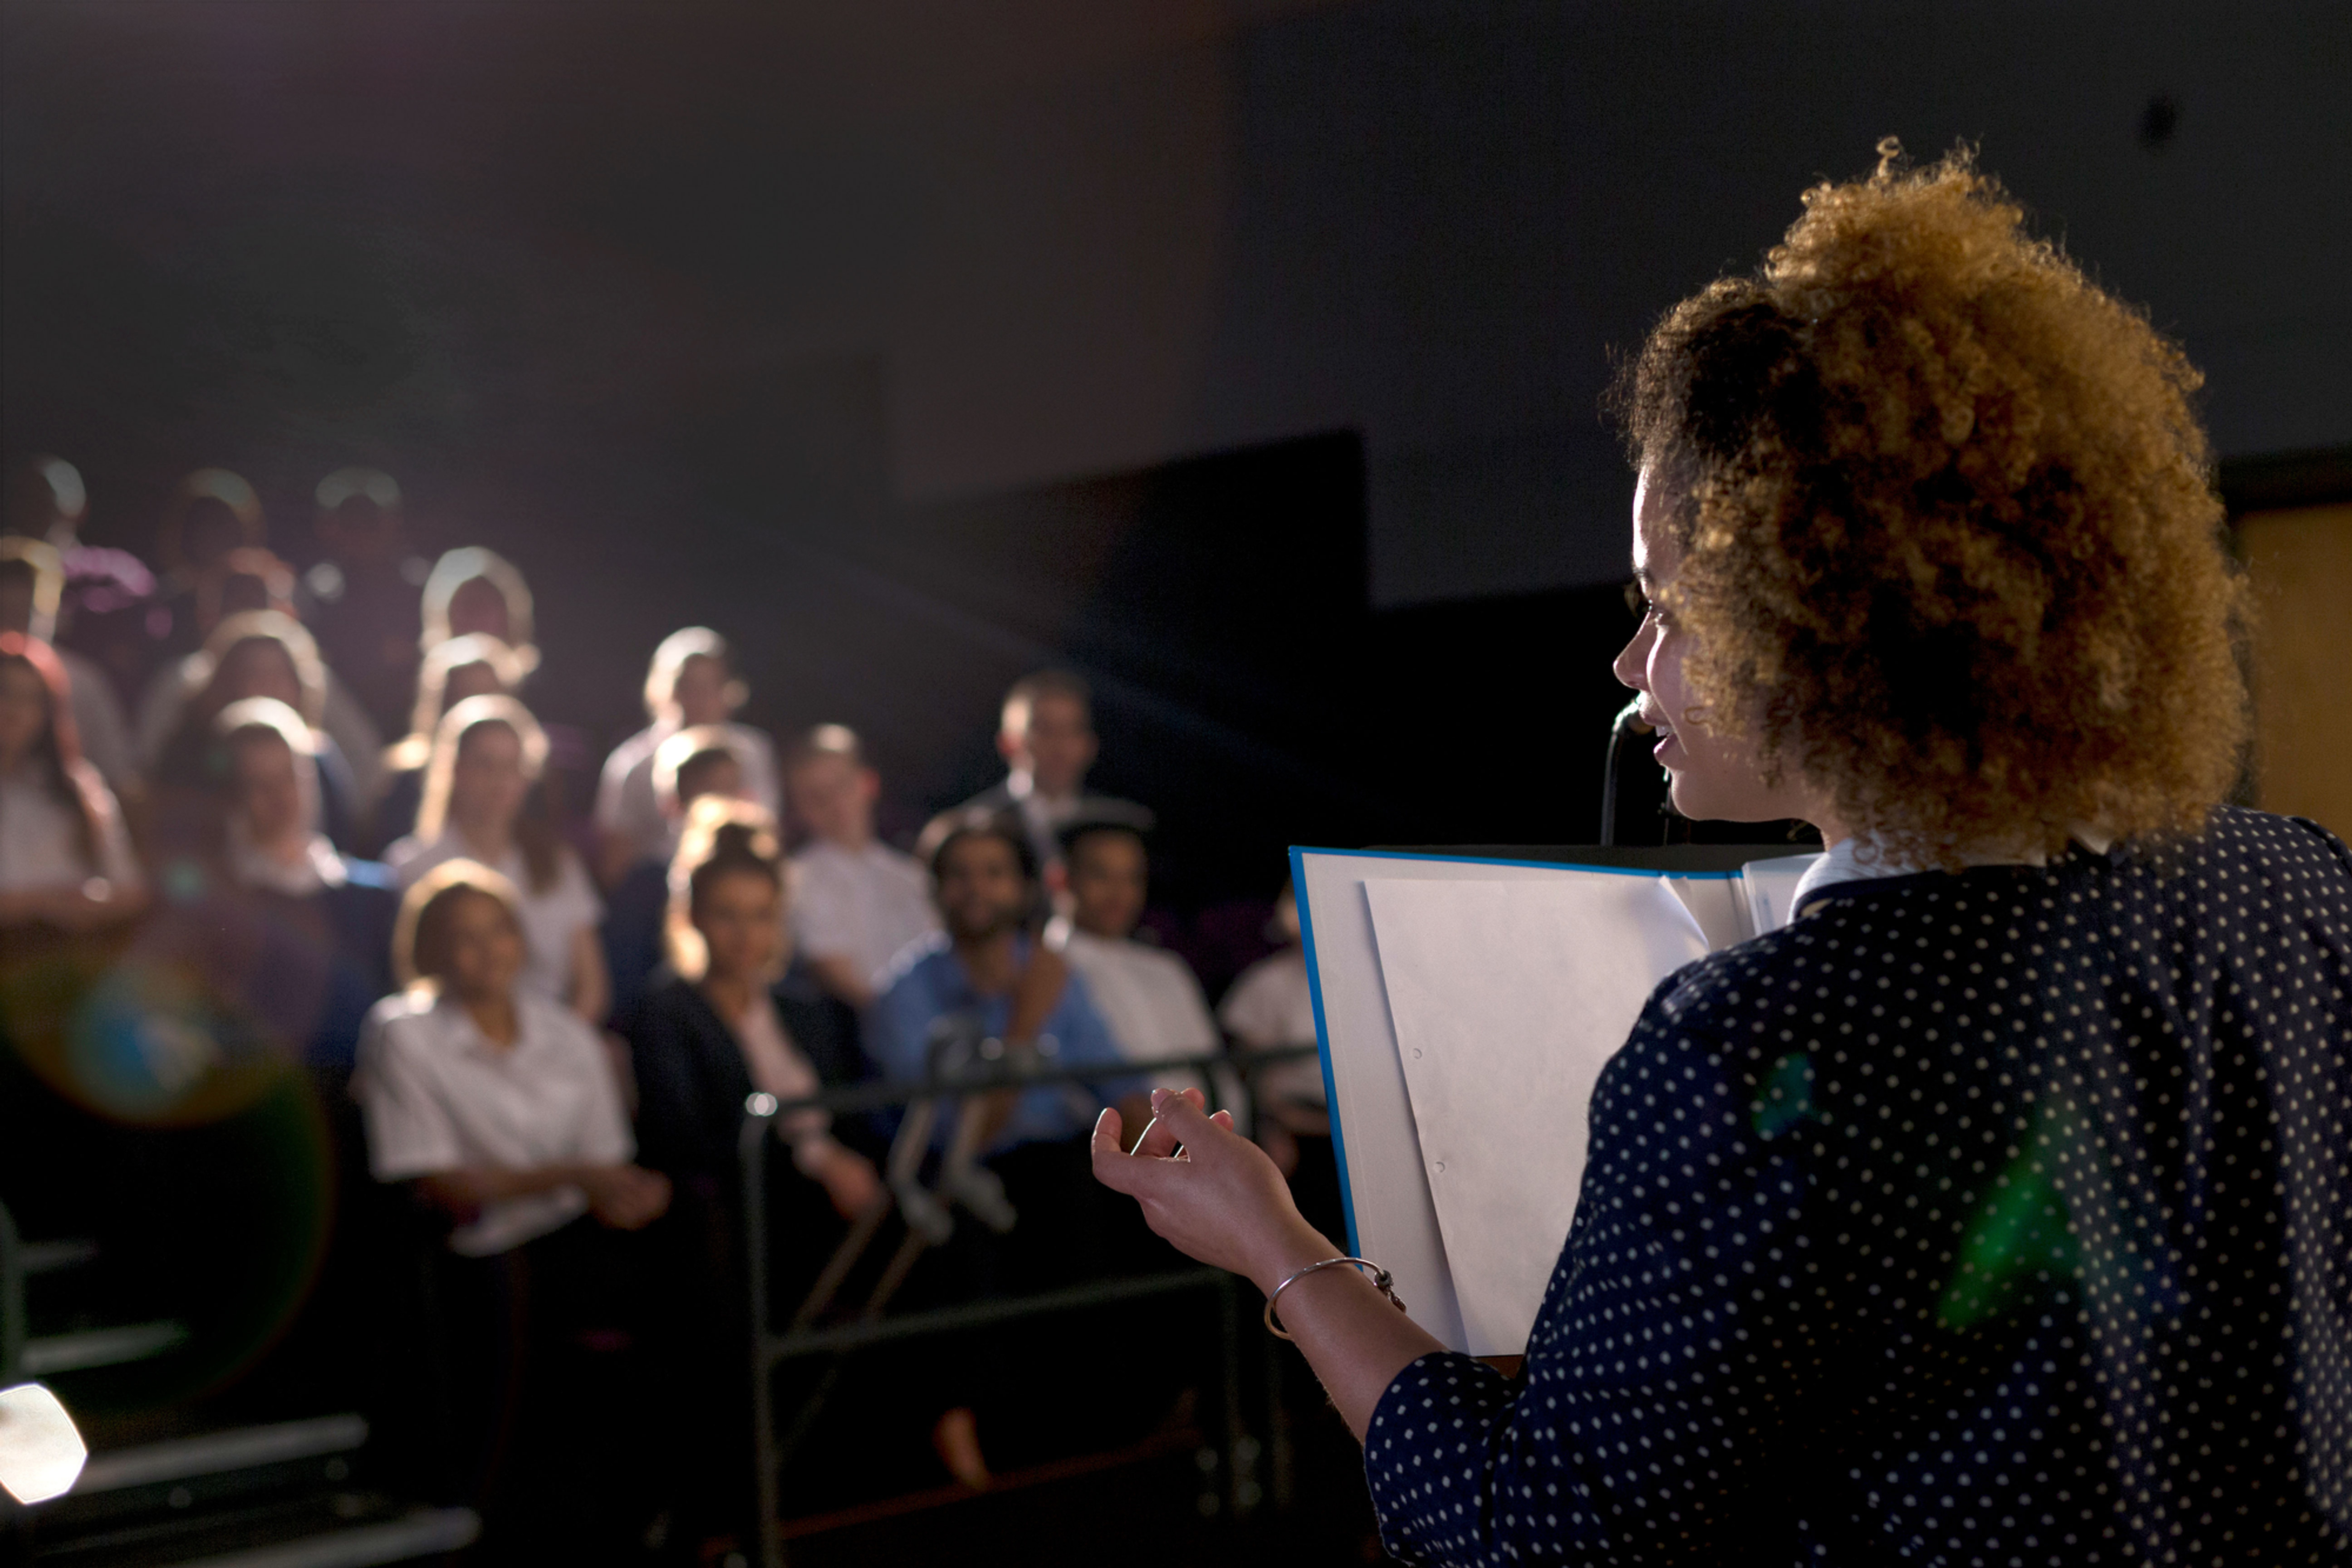 One on One Public Speaking Sessions